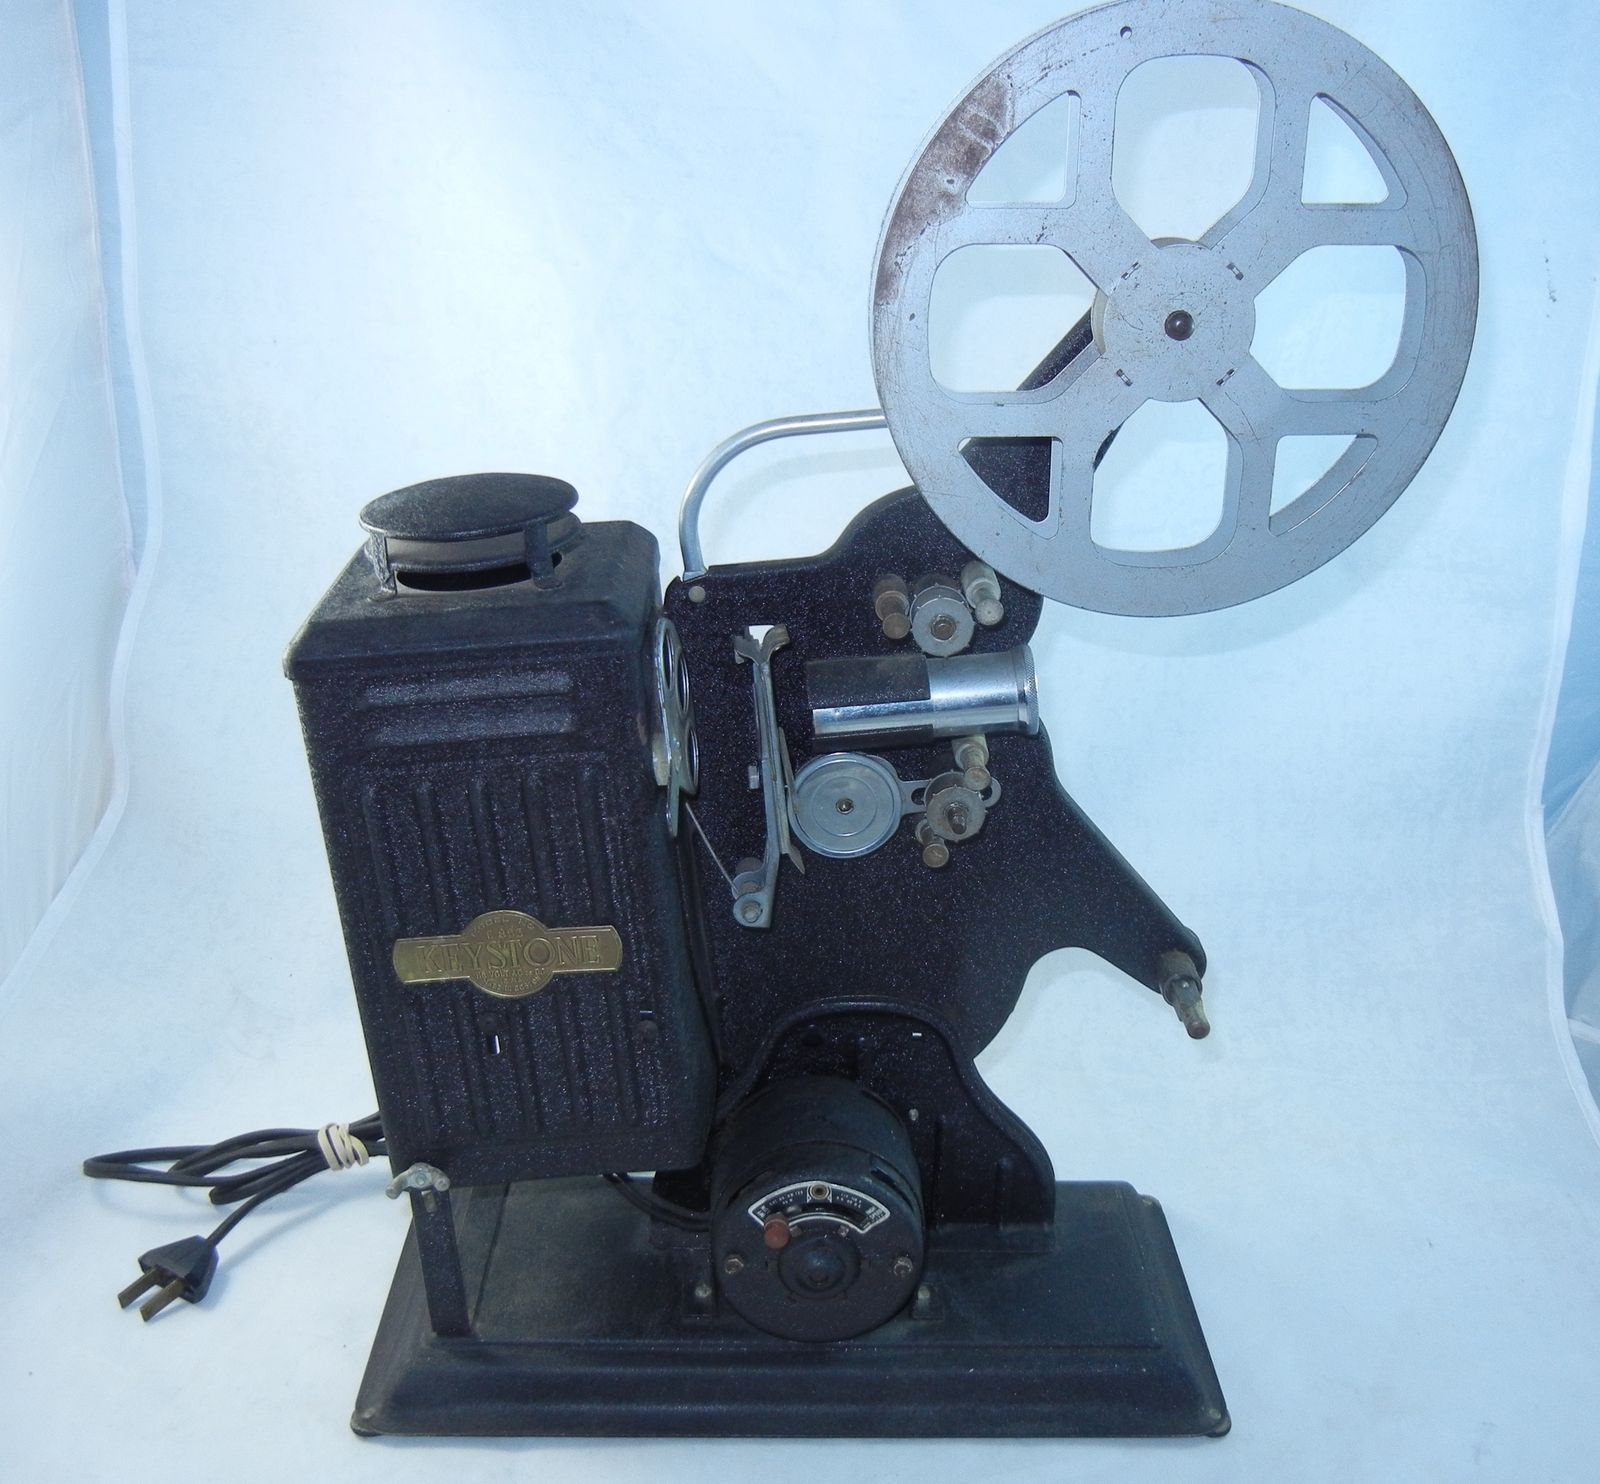 Keystone 16mm Projector Moviegraph E853 in Original Box